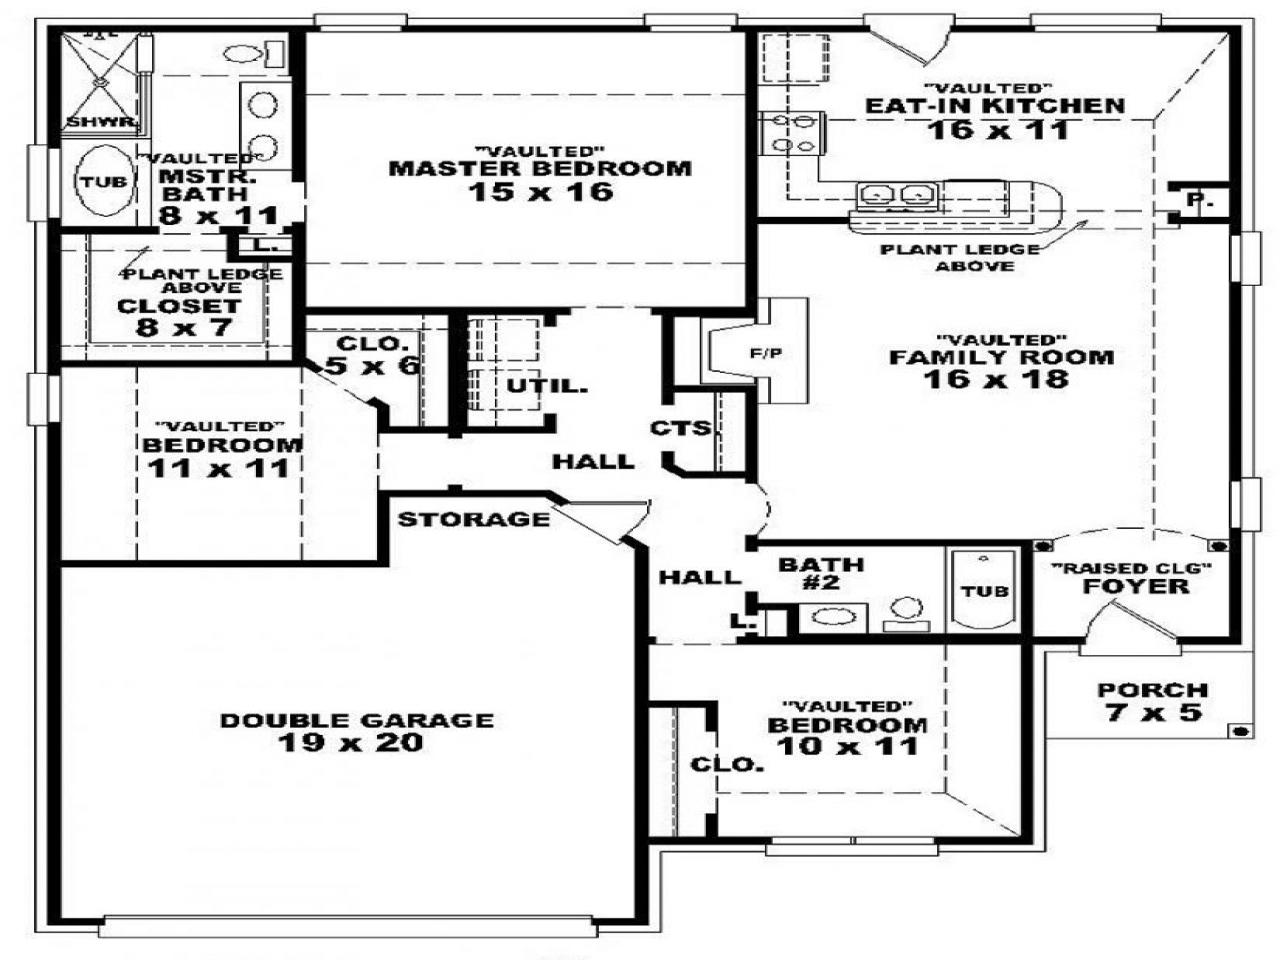 3 bedroom 2 bath house plans 1 level 3 bedroom 2 bath 1 for 3 bedroom 3 bath house plans